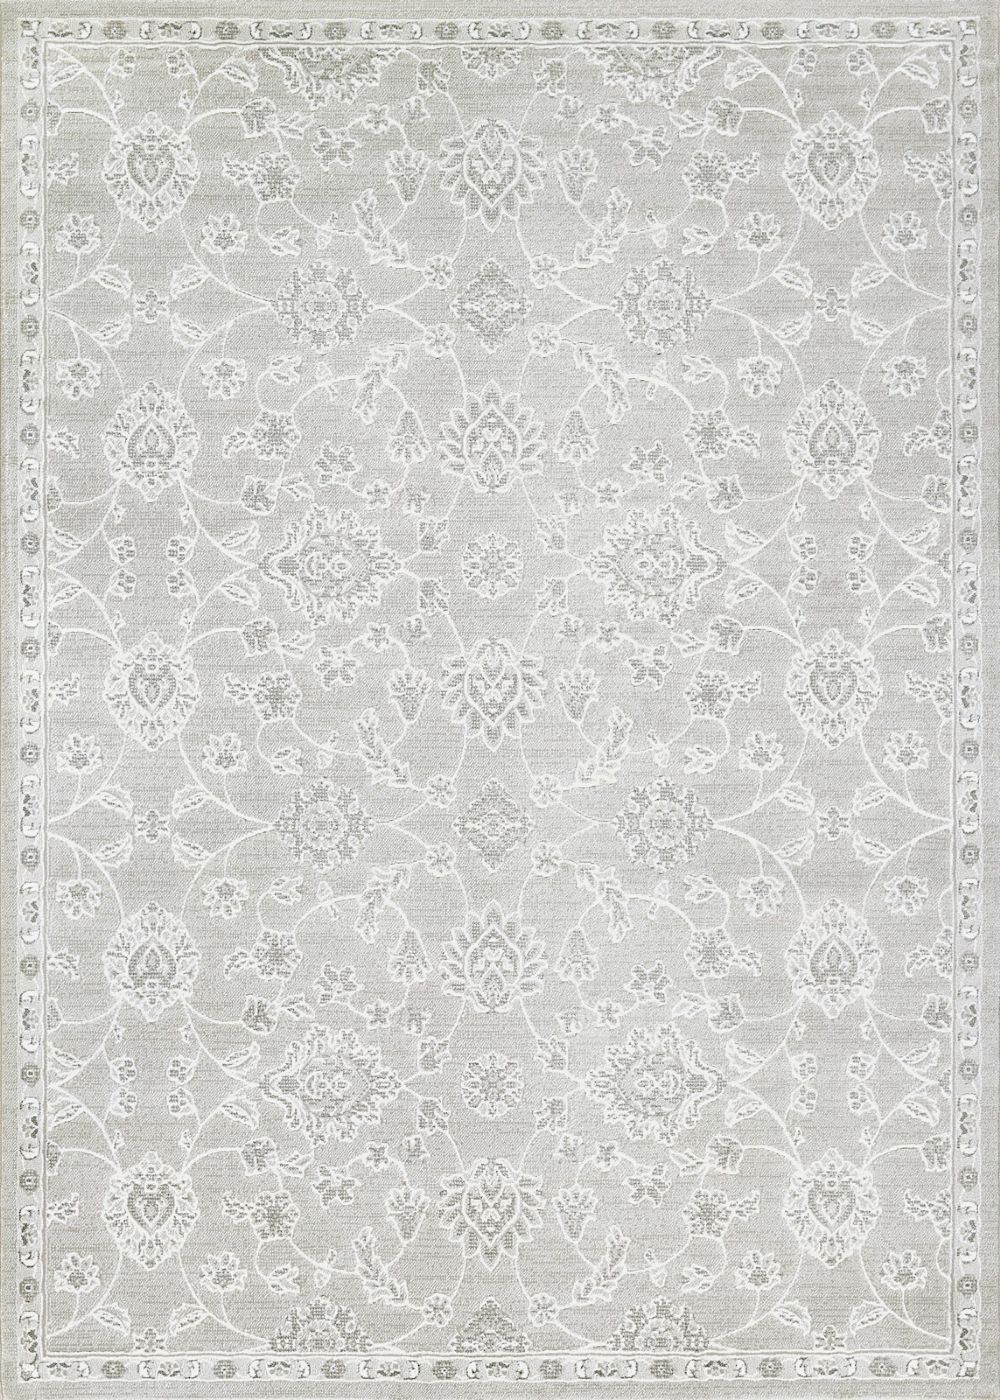 couristan marina country & floral area rug collection